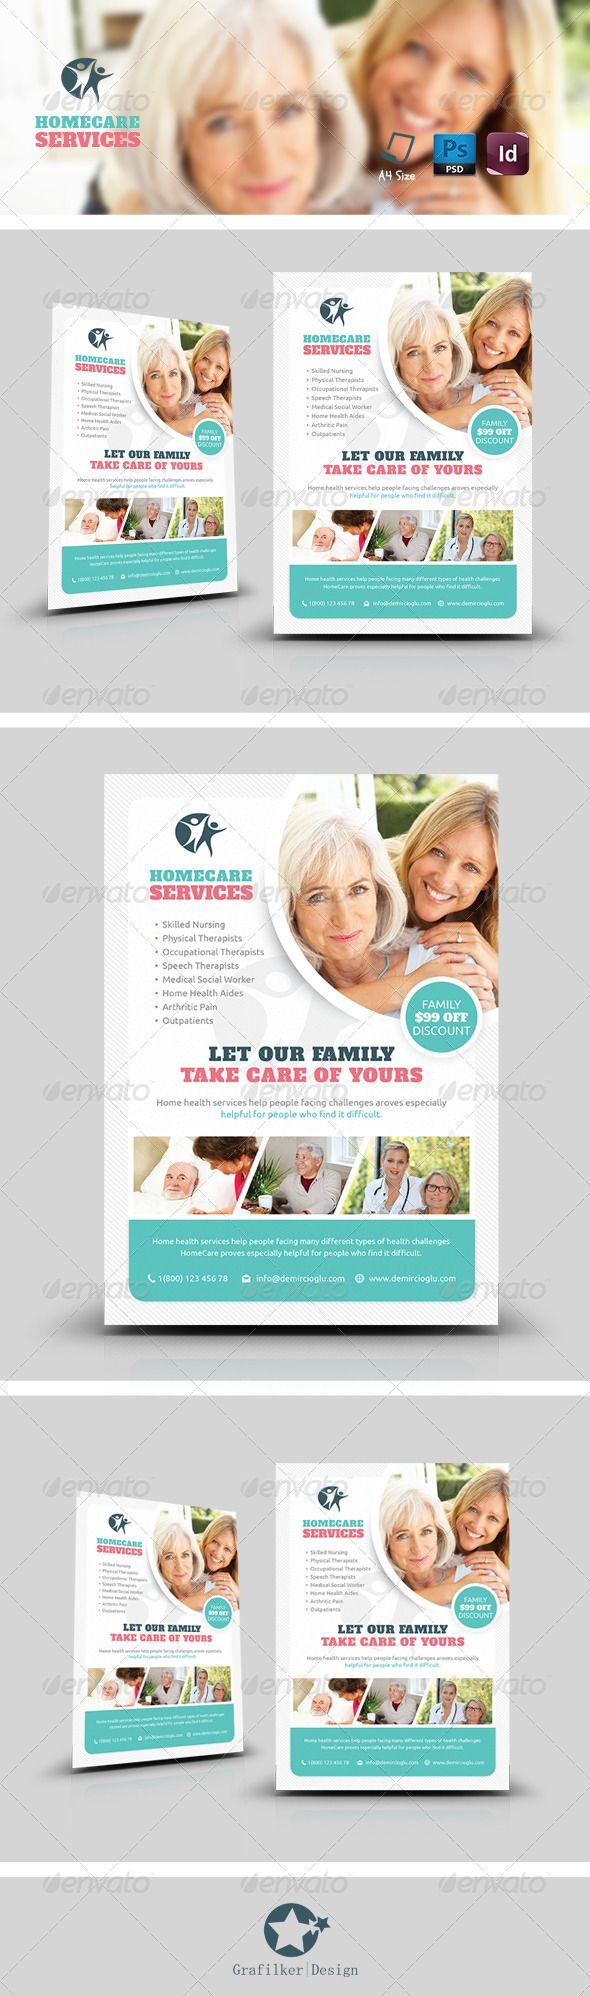 Home Care Flyer Templates | Meal preparation, Flyer template and ...